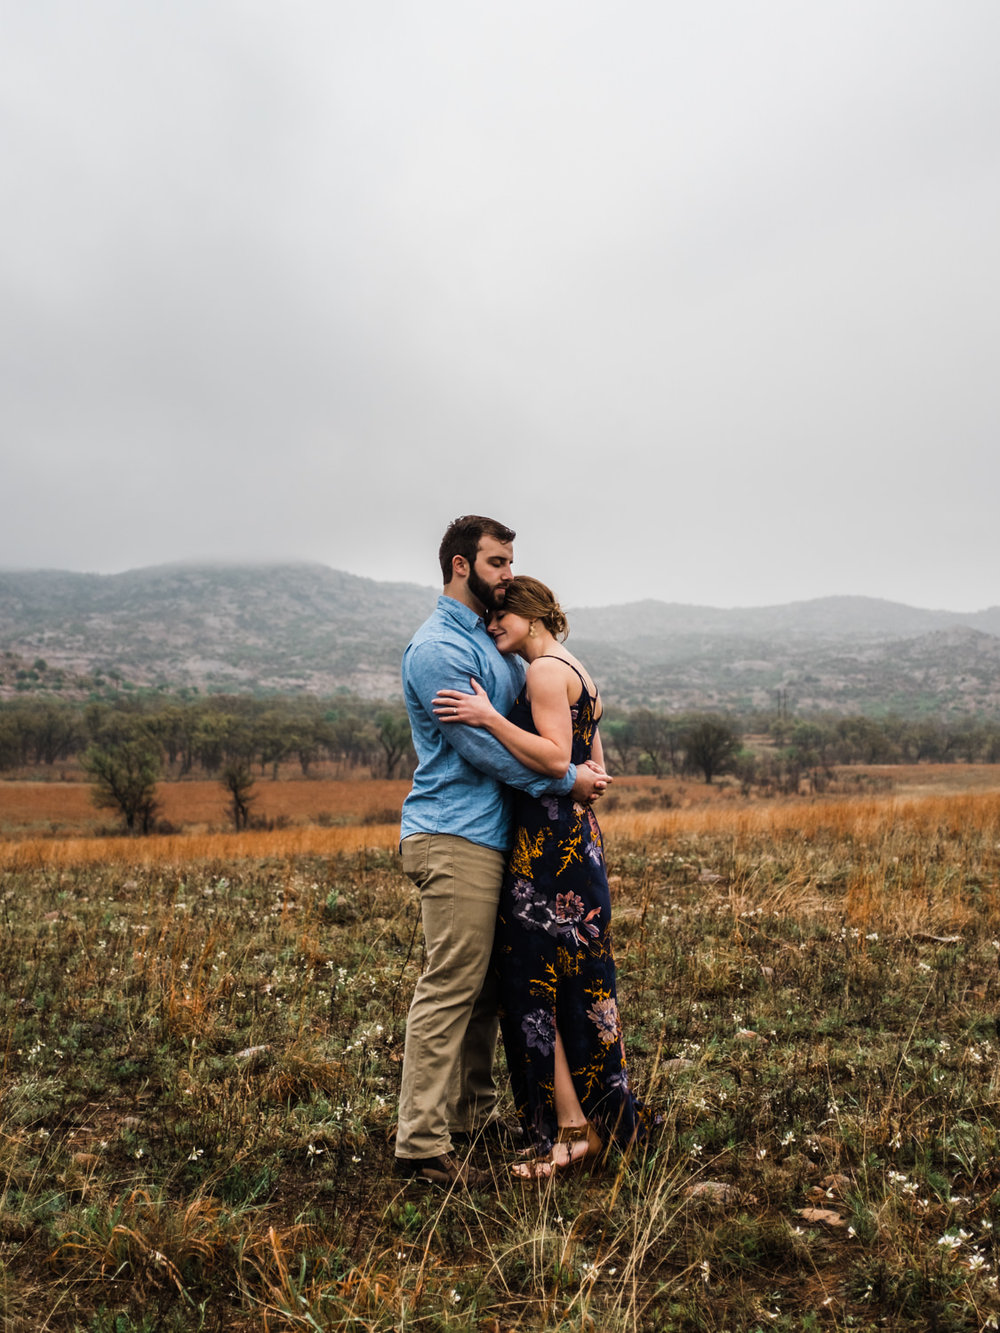 Oklahoma Engagement-Neal Dieker-Oklahoma Wedding Photography-Wichita Mountains-Wichita, Kansas Portrait Photographer-174.jpg